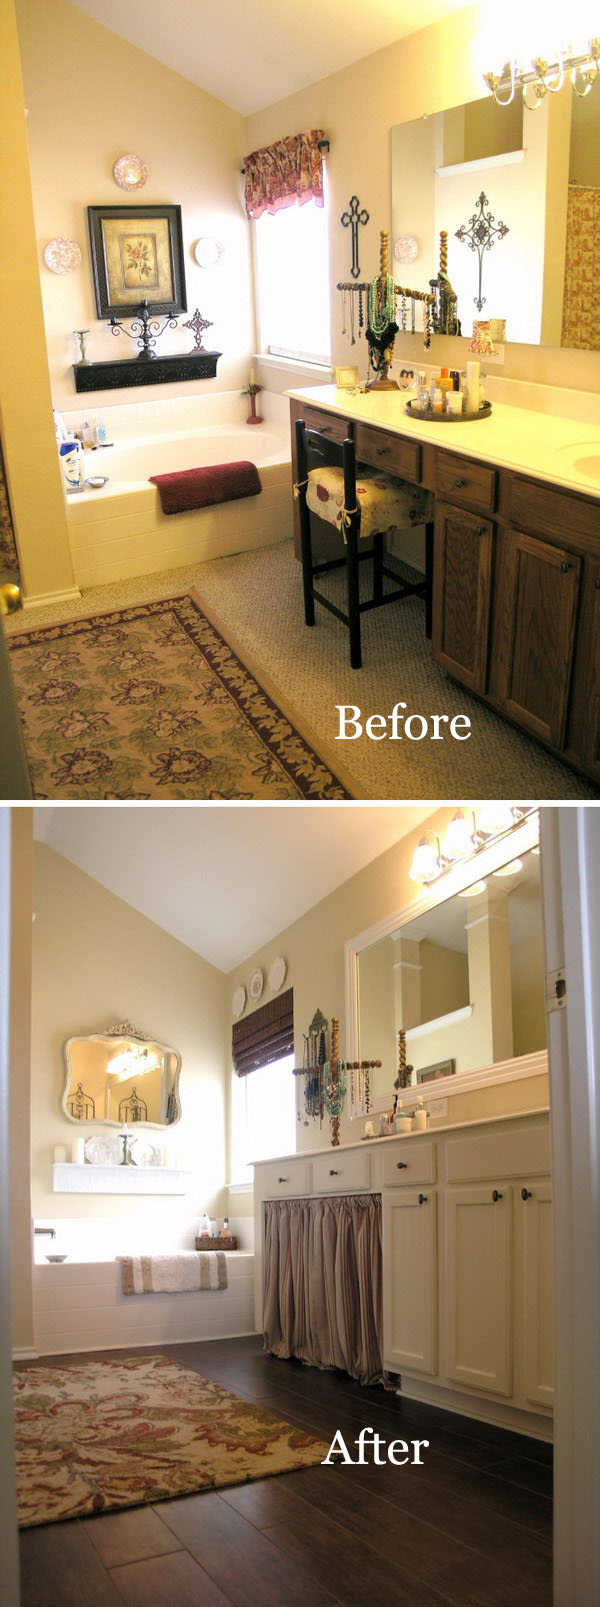 From Dark and Dirty to Bright and Clean Small Bathroom Transformation Before After